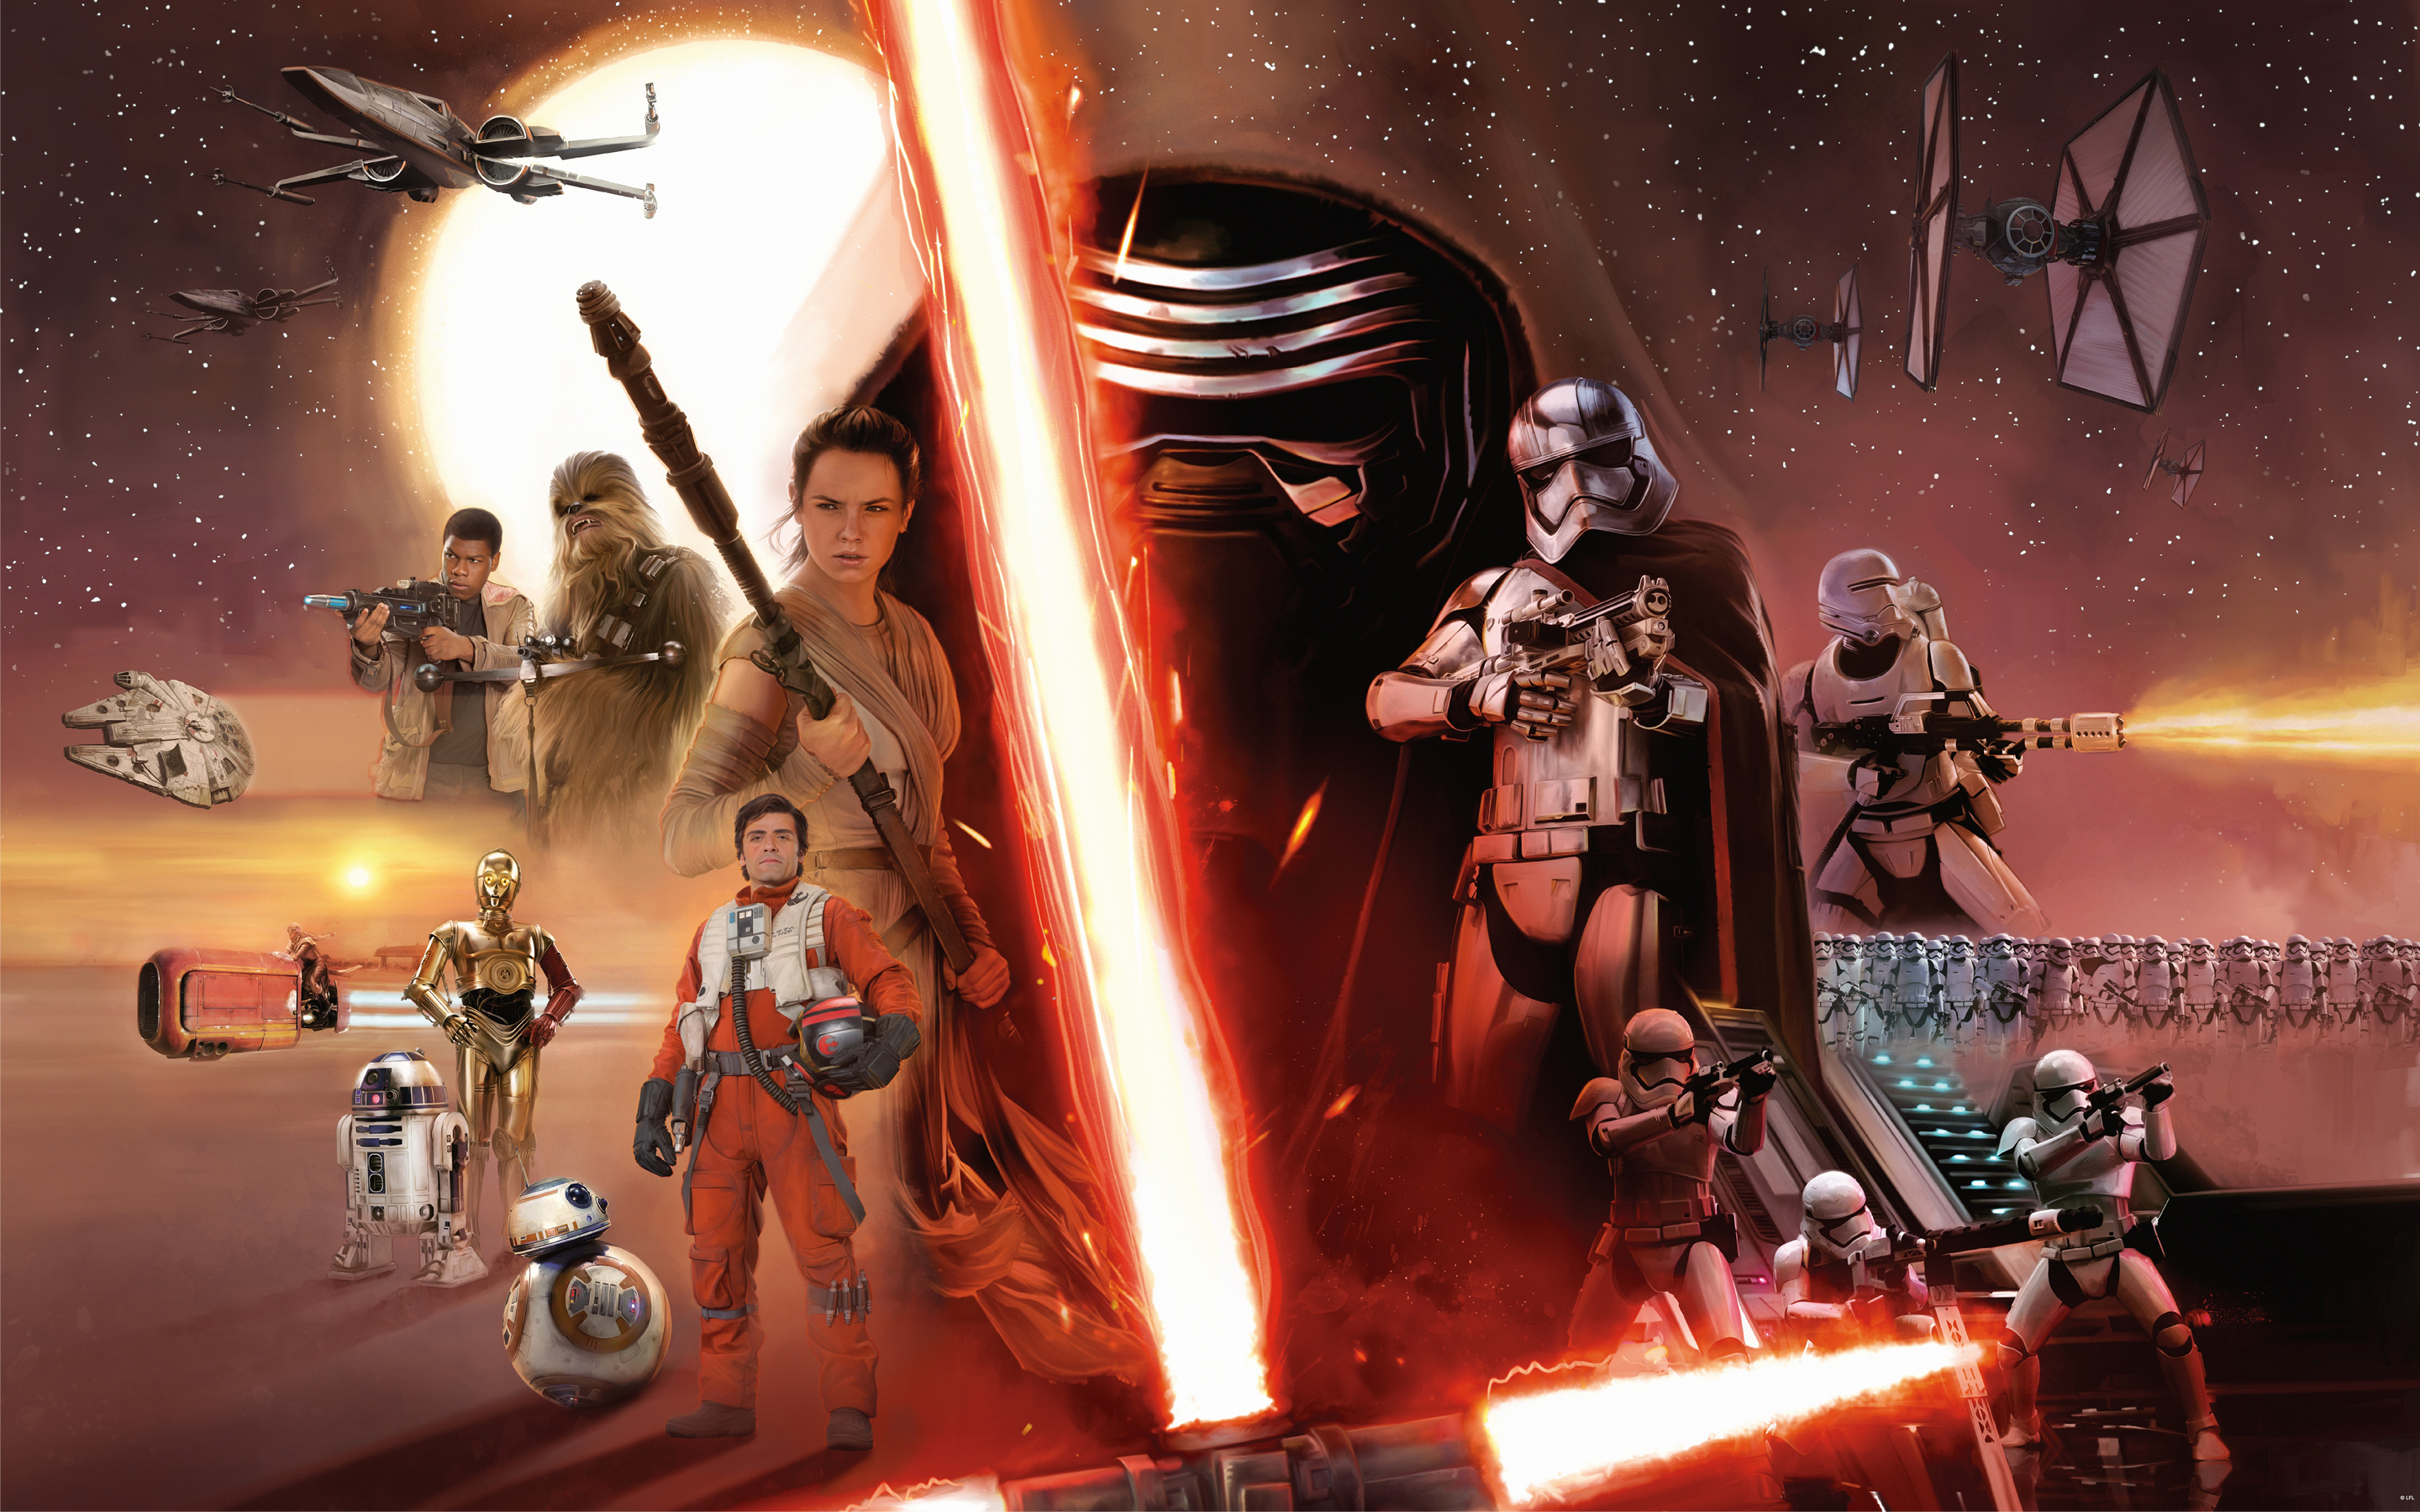 Free Download Star Wars The Force Awakens Wallpapers Images At Movies 2880x1800 For Your Desktop Mobile Tablet Explore 54 Star Wars Force Background Star Wars Force Background Star Wars